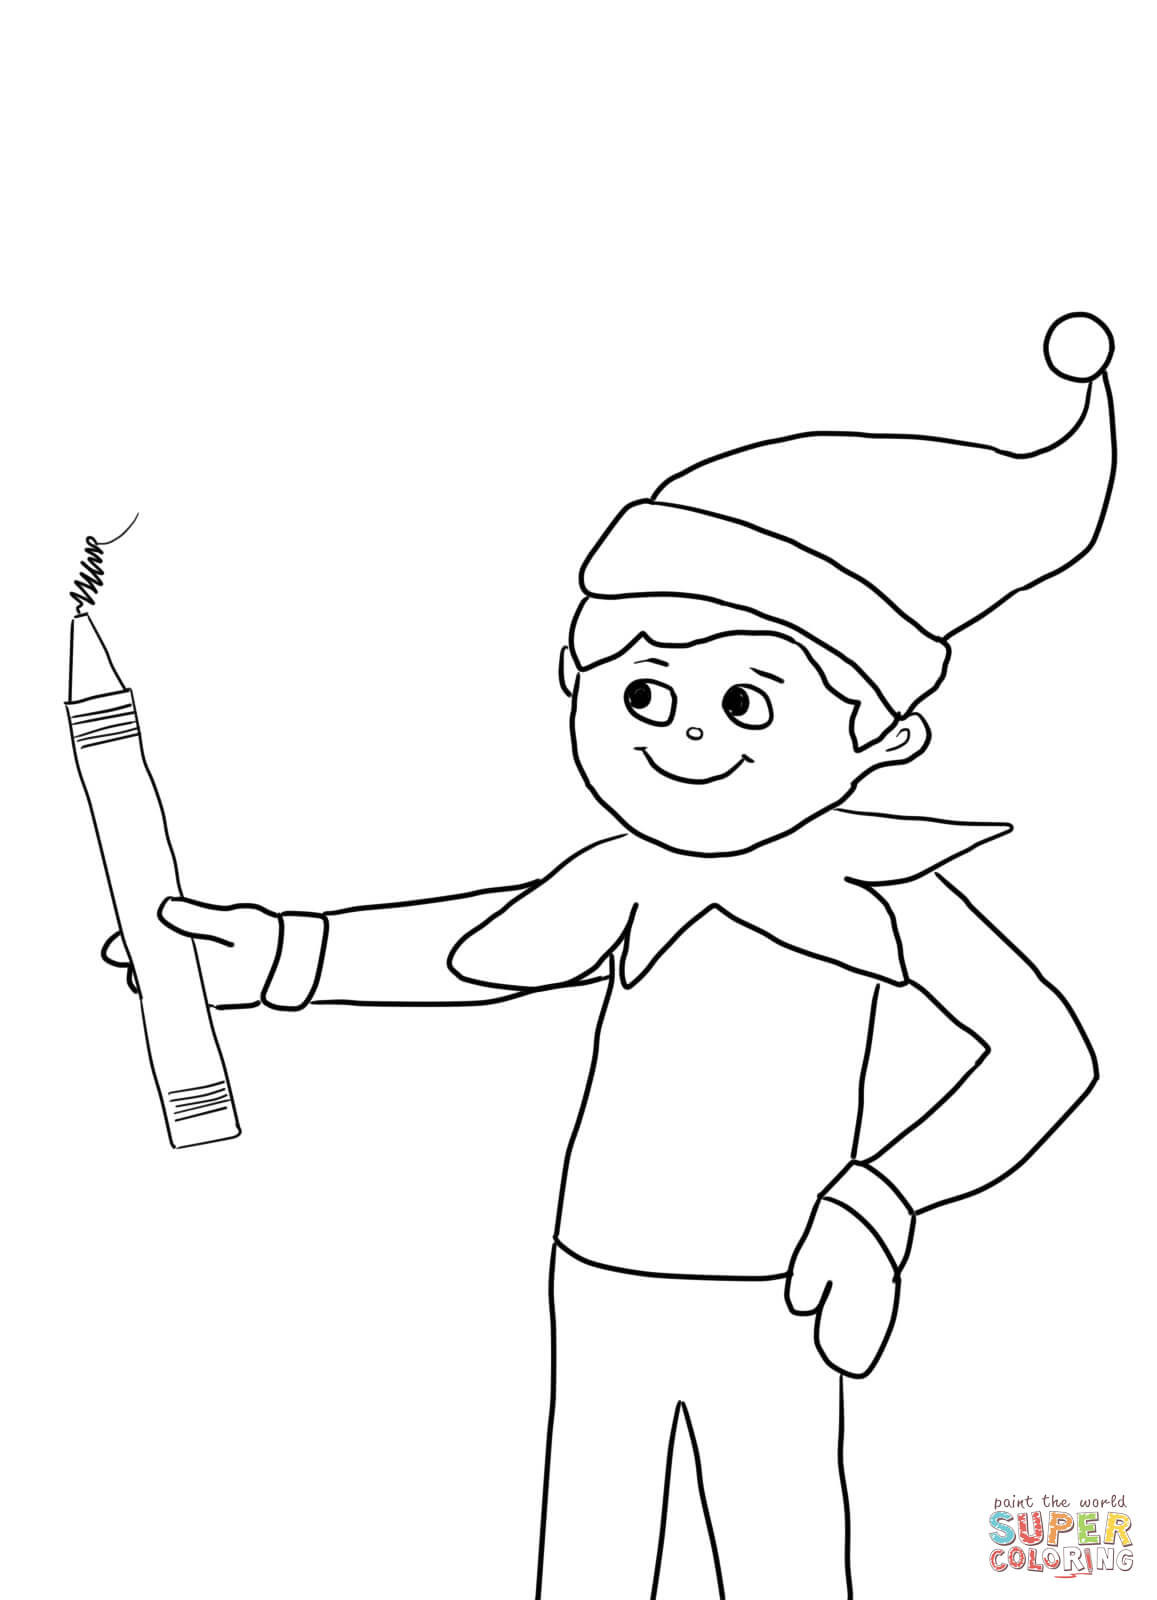 Best ideas about Elf On The Shelf Printable Coloring Pages . Save or Pin Elf on the Shelf with Pencil coloring page Now.